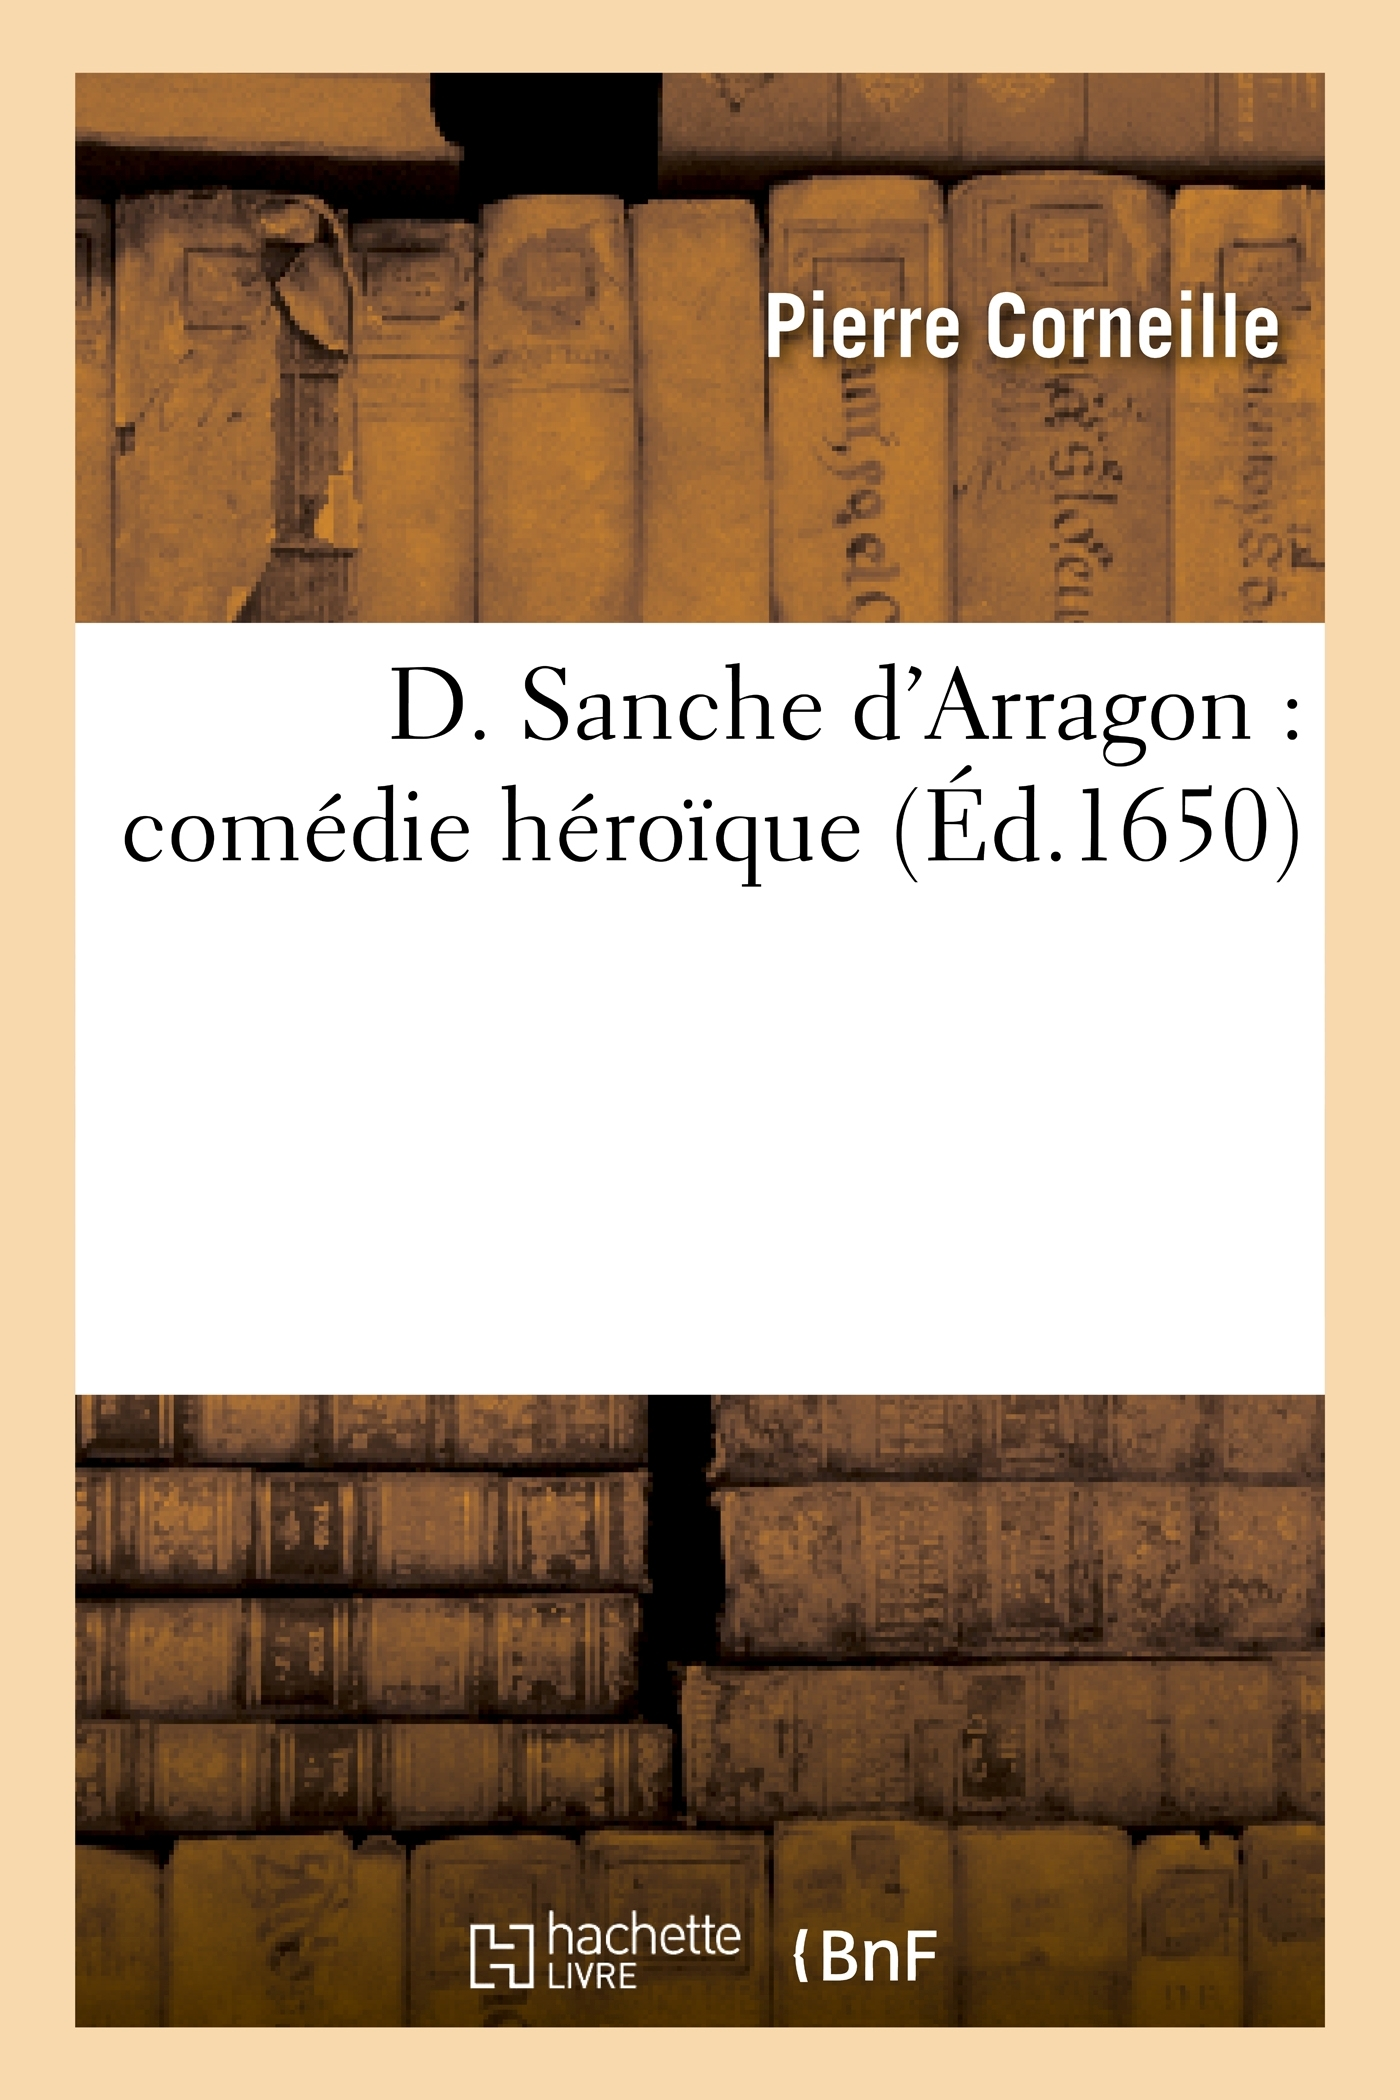 D. SANCHE D'ARRAGON : COMEDIE HEROIQUE